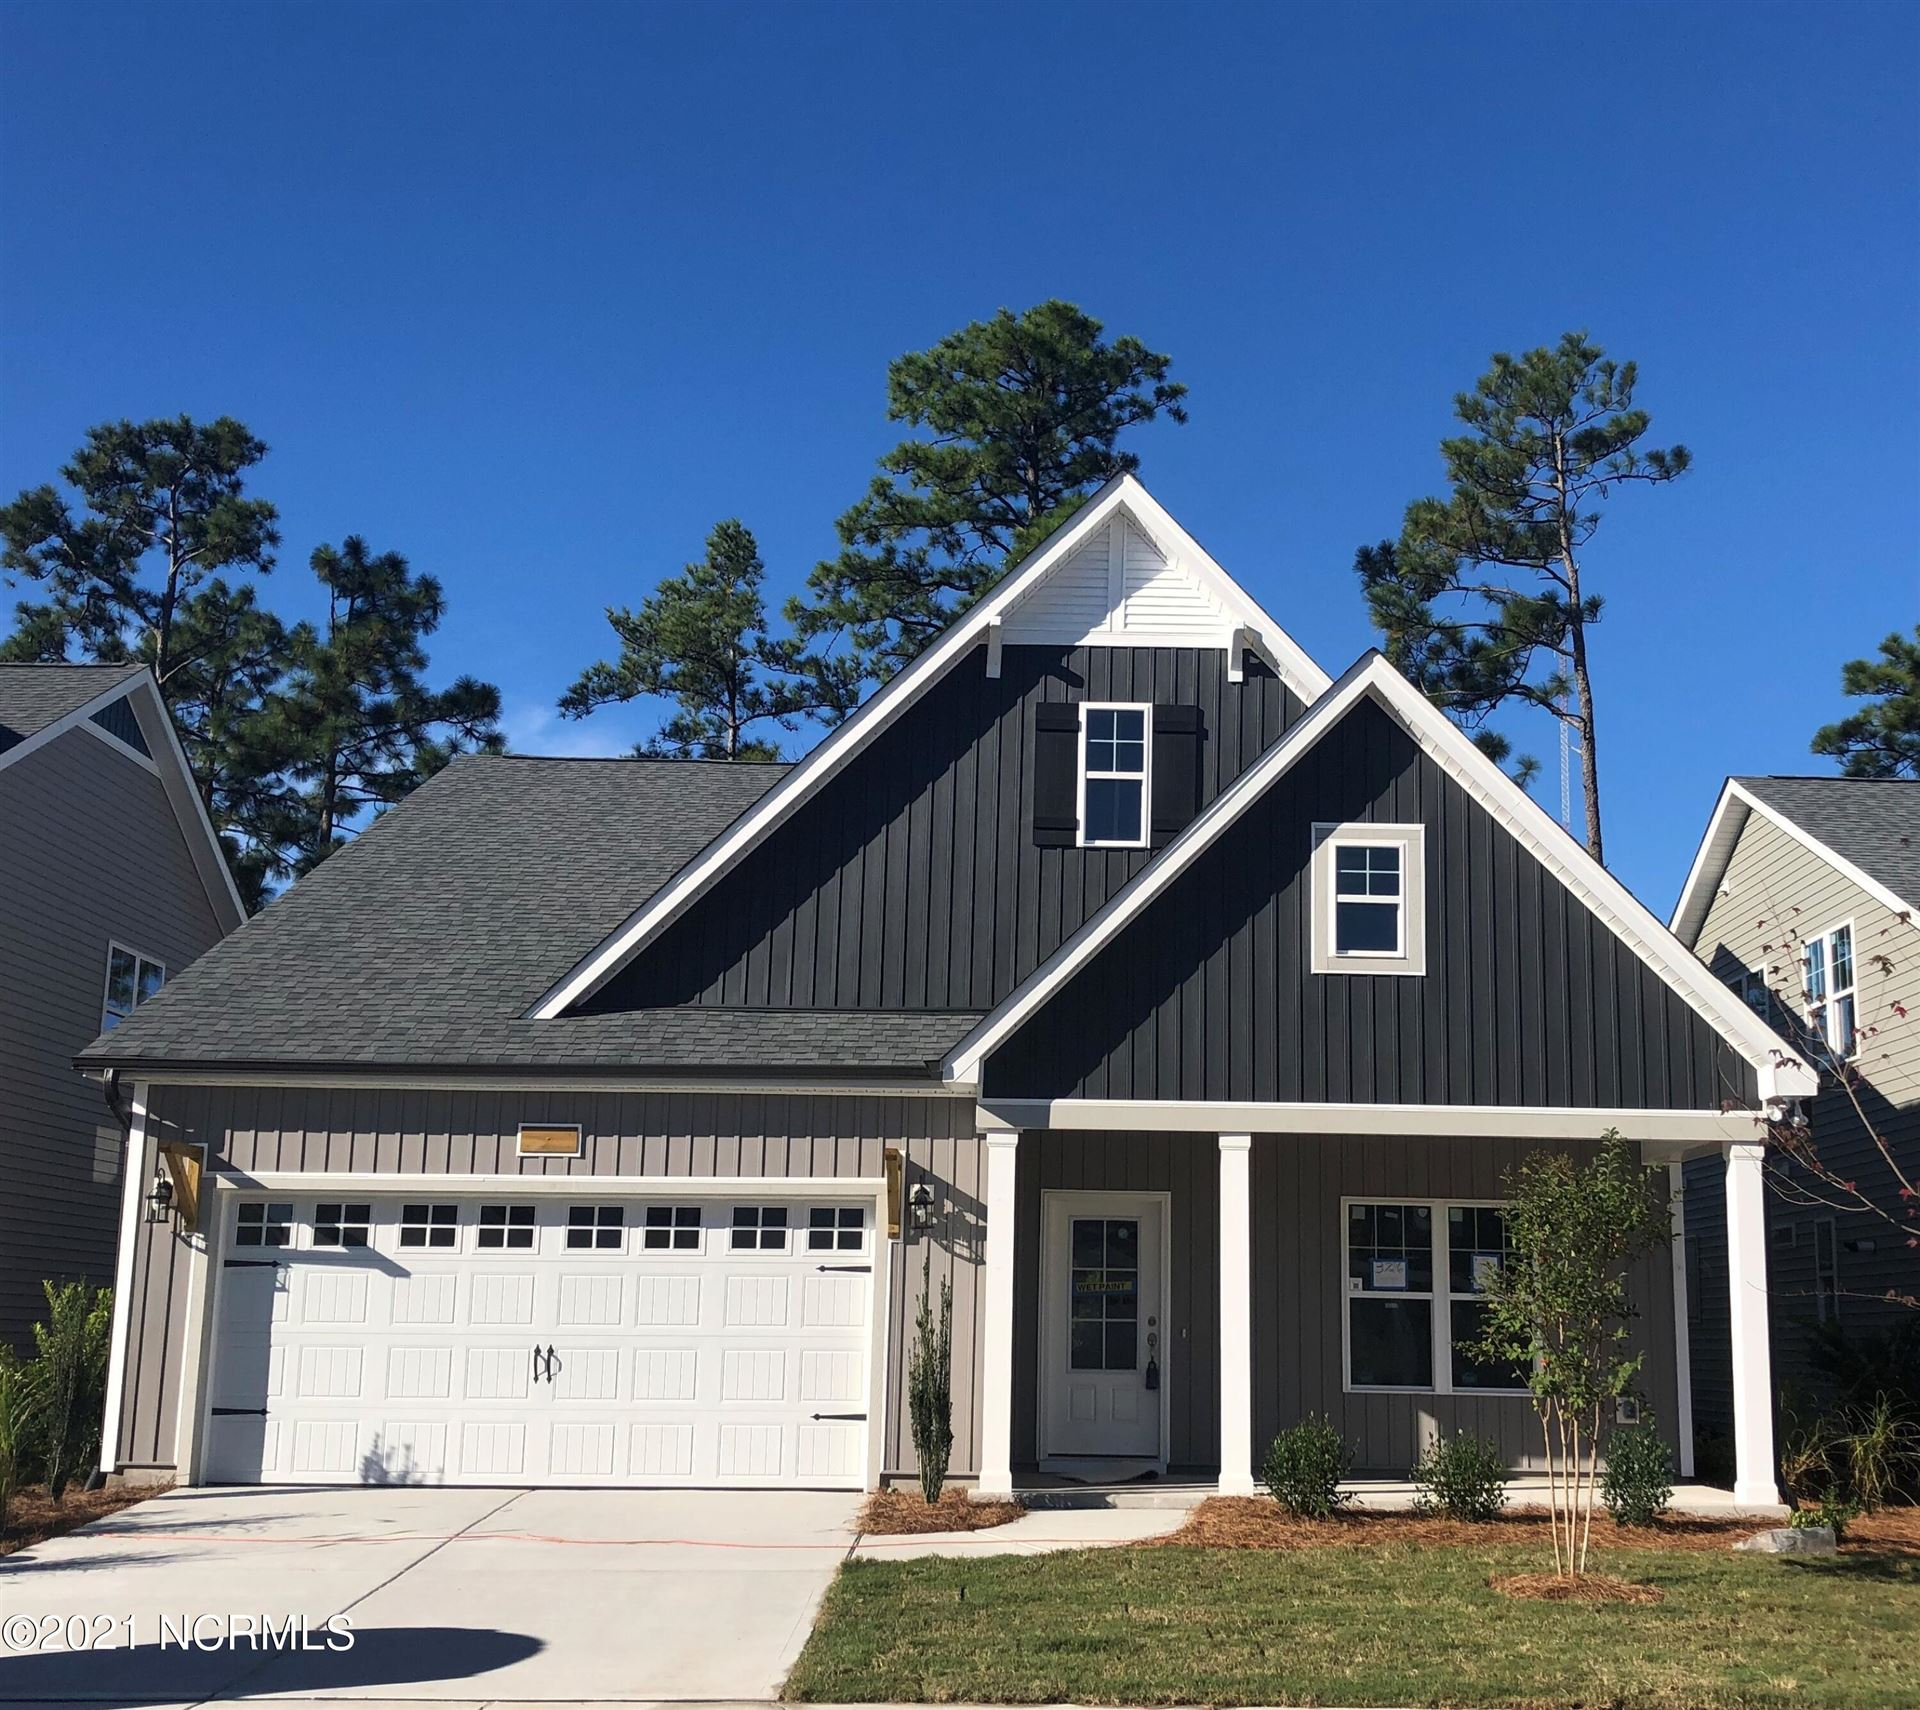 Photo for 3726 Spicetree Drive, Wilmington, NC 28412 (MLS # 100285436)